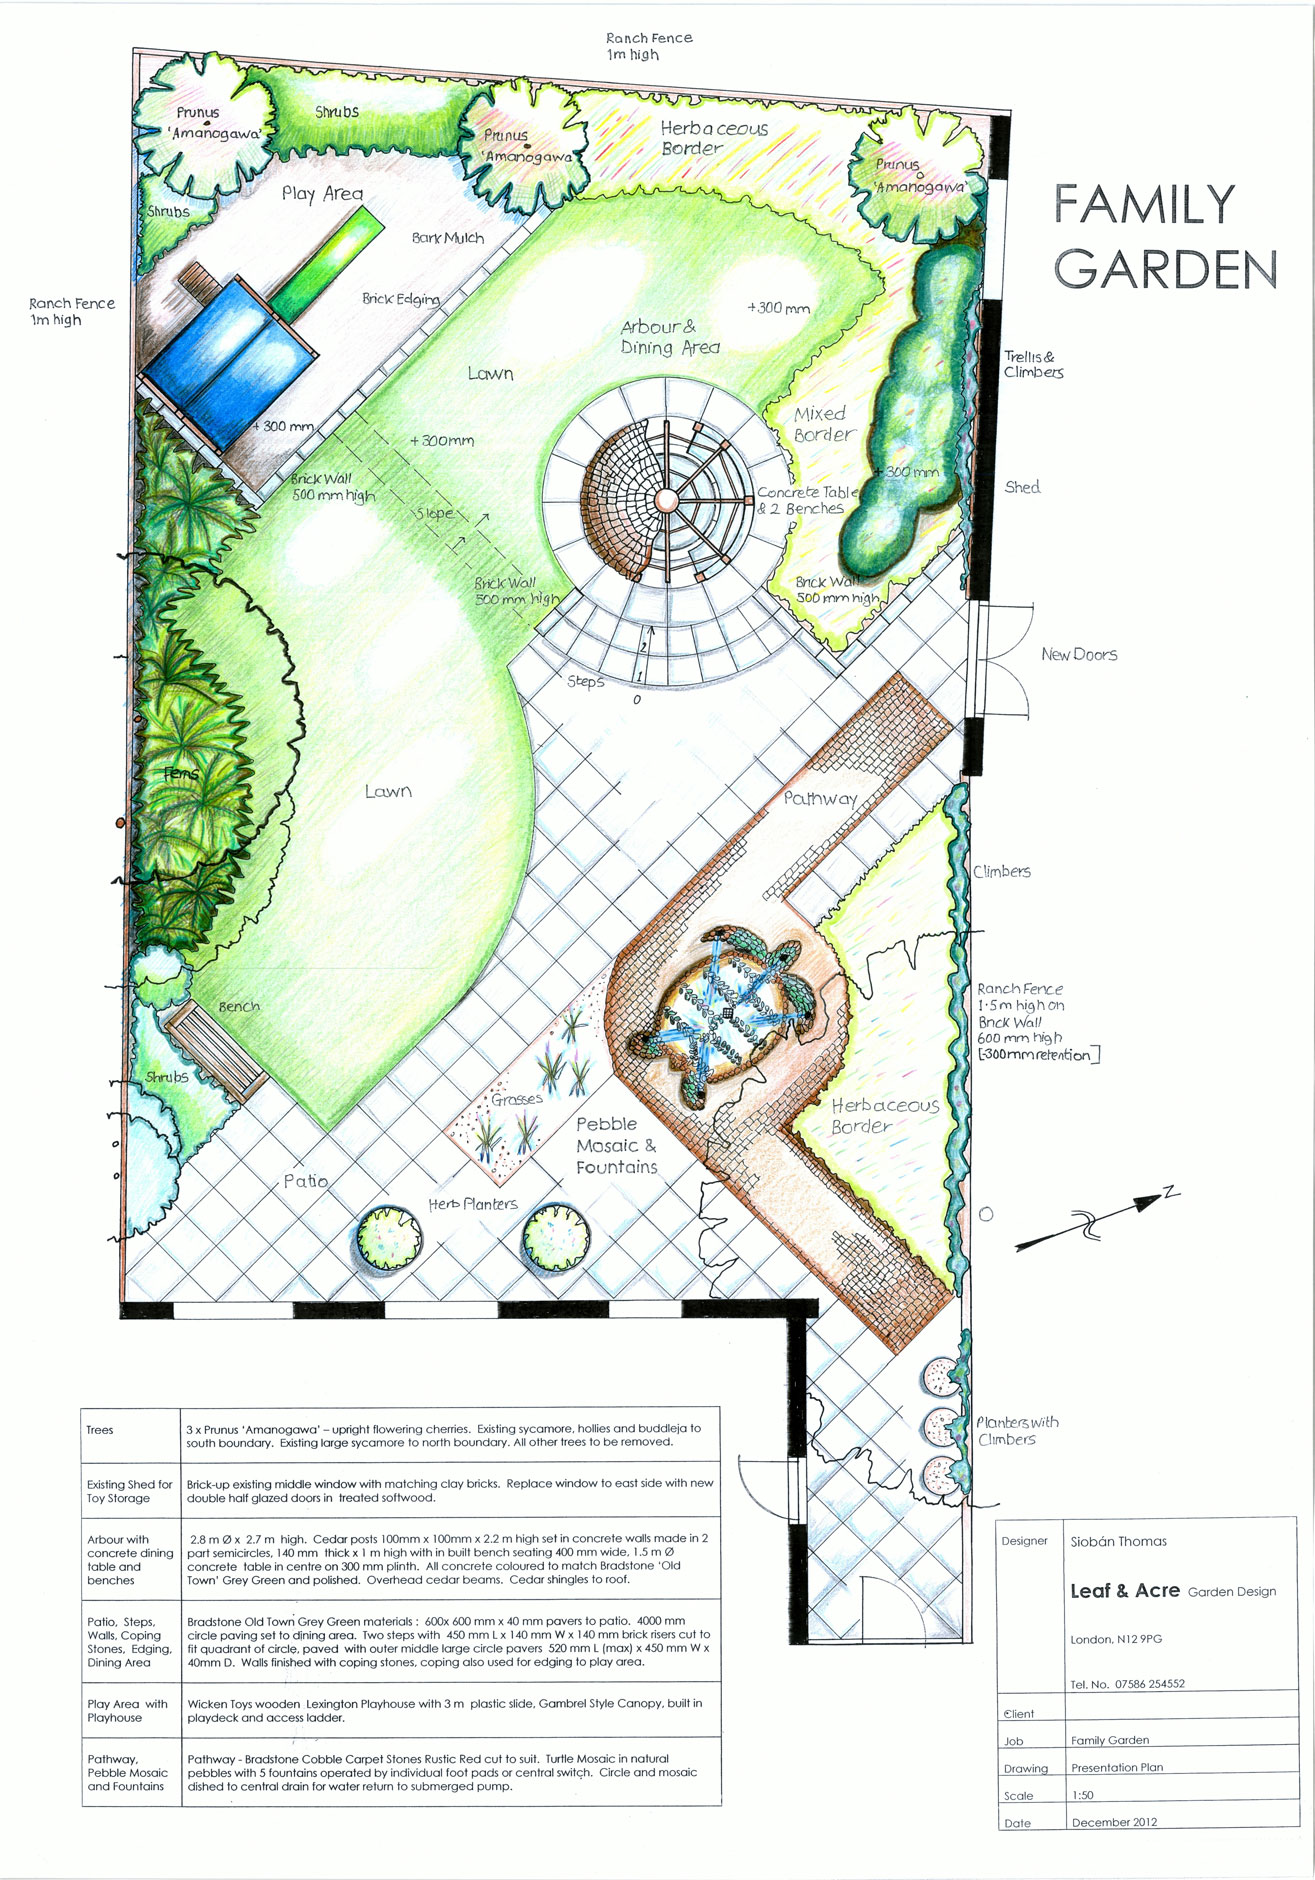 Garden design portfolio leaf and acre for How to design garden layout